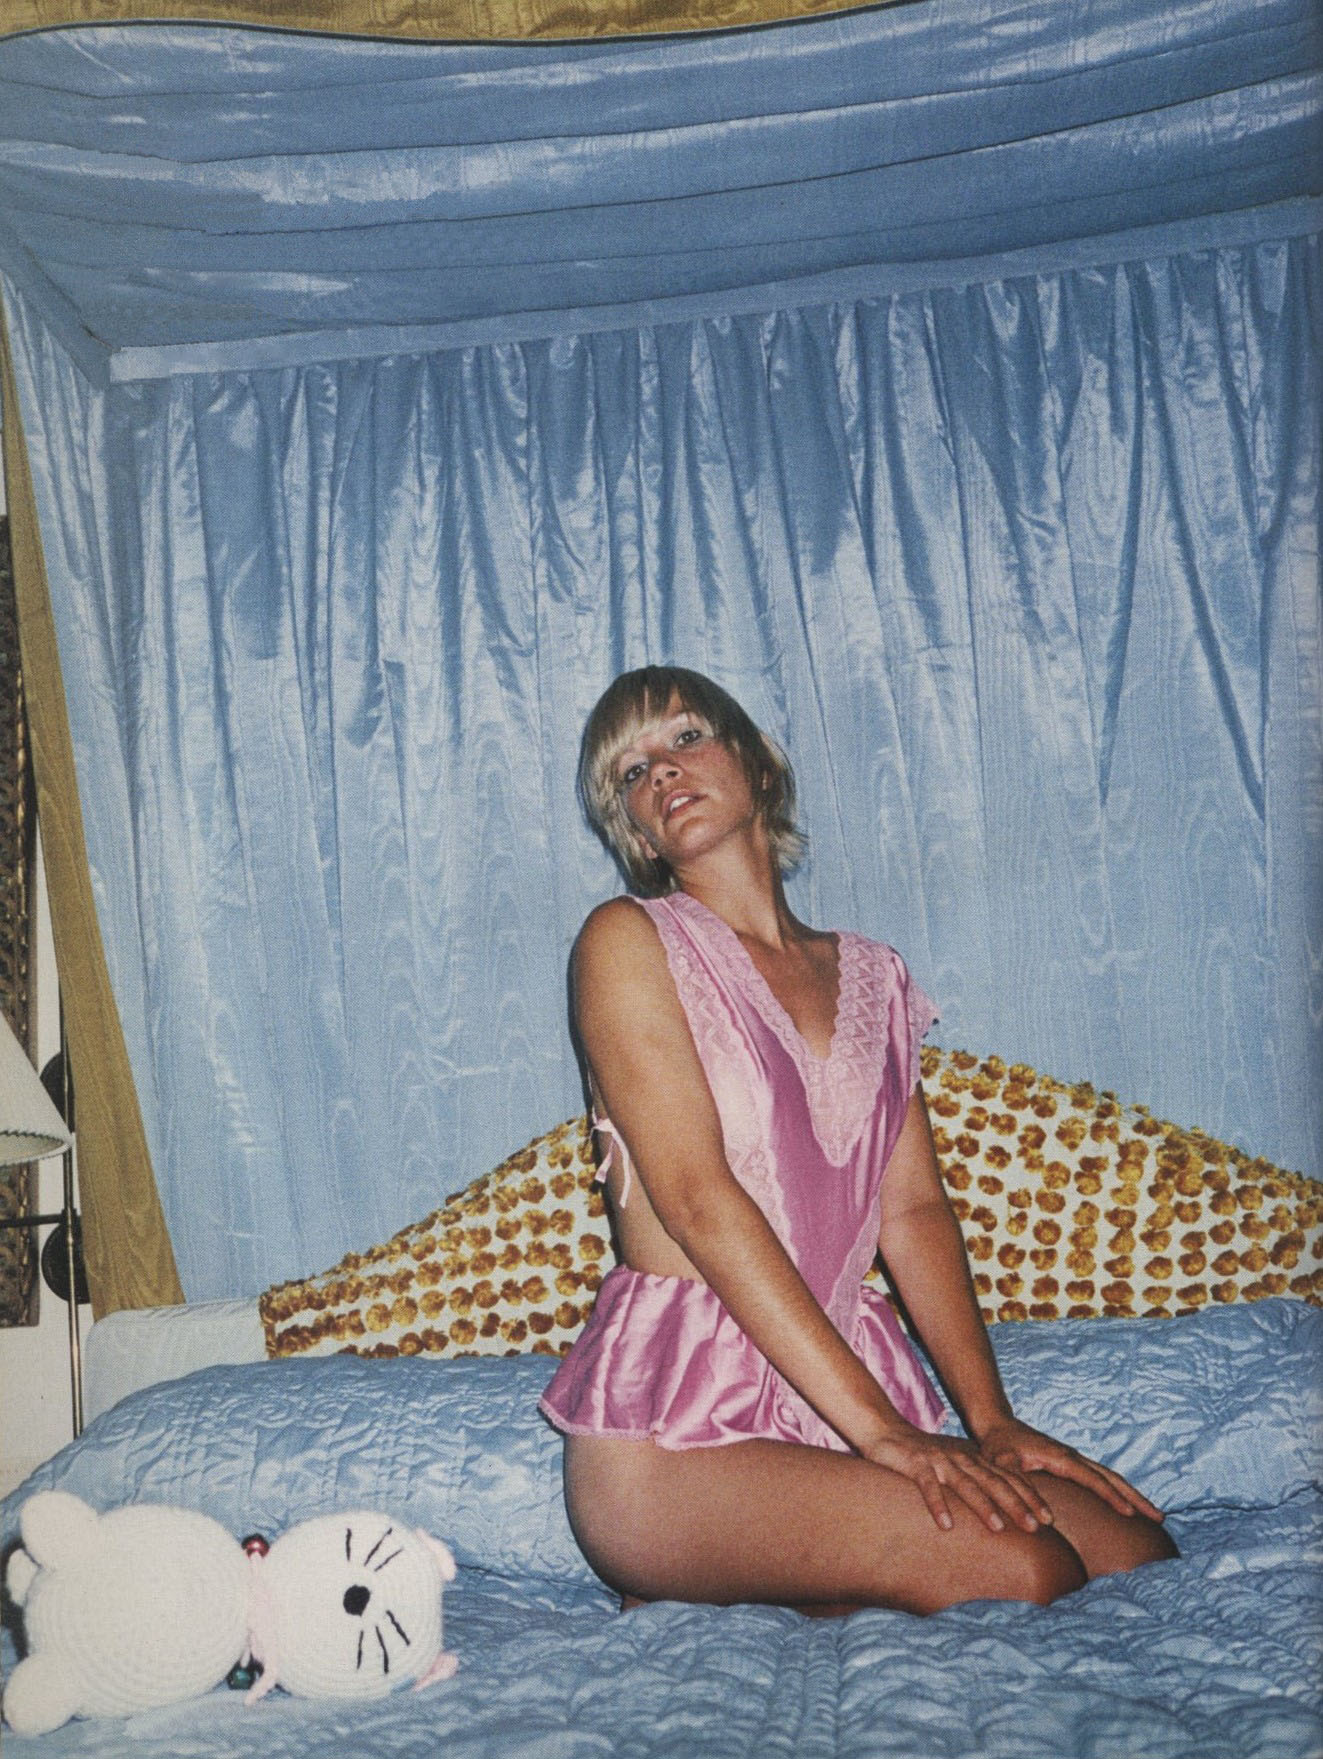 nikki uberti photography shawn mortensen styling carrie imberman shot in hotel marfa texas id the bedroom issue no 213 september 2001